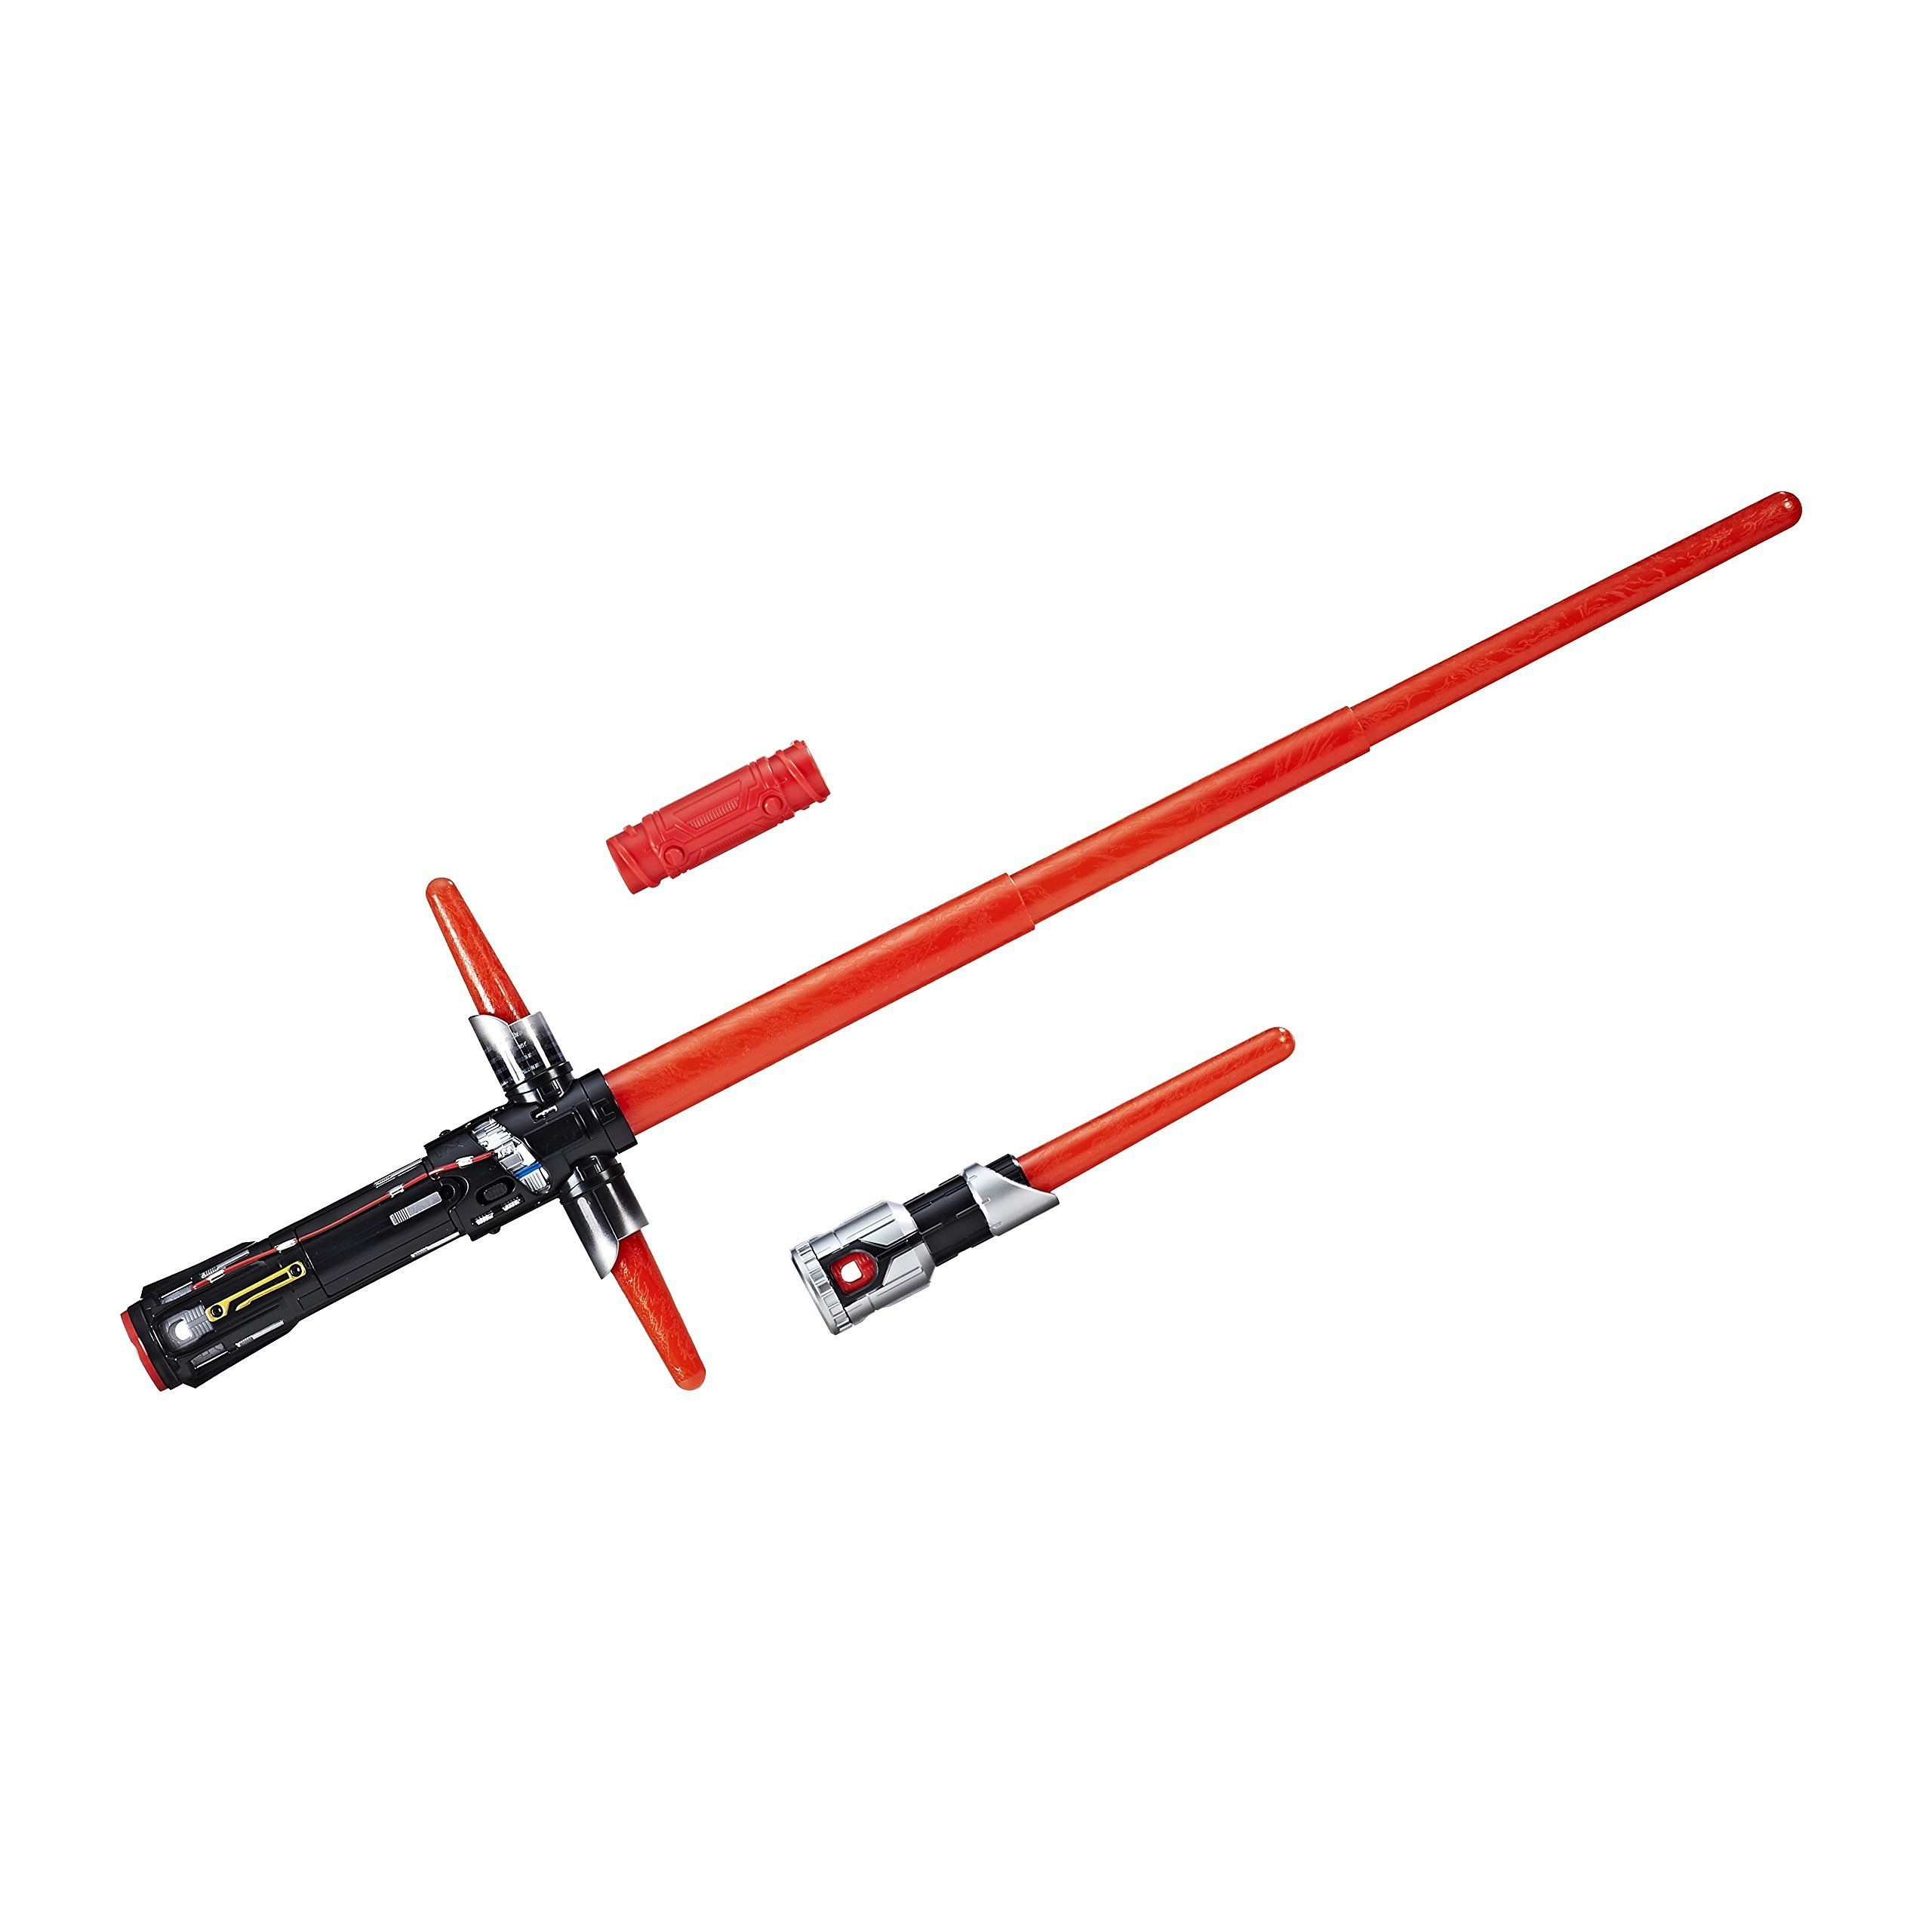 Star Wars The Last Jedi Bladebuilders Kylo Ren Electronic lightsabre